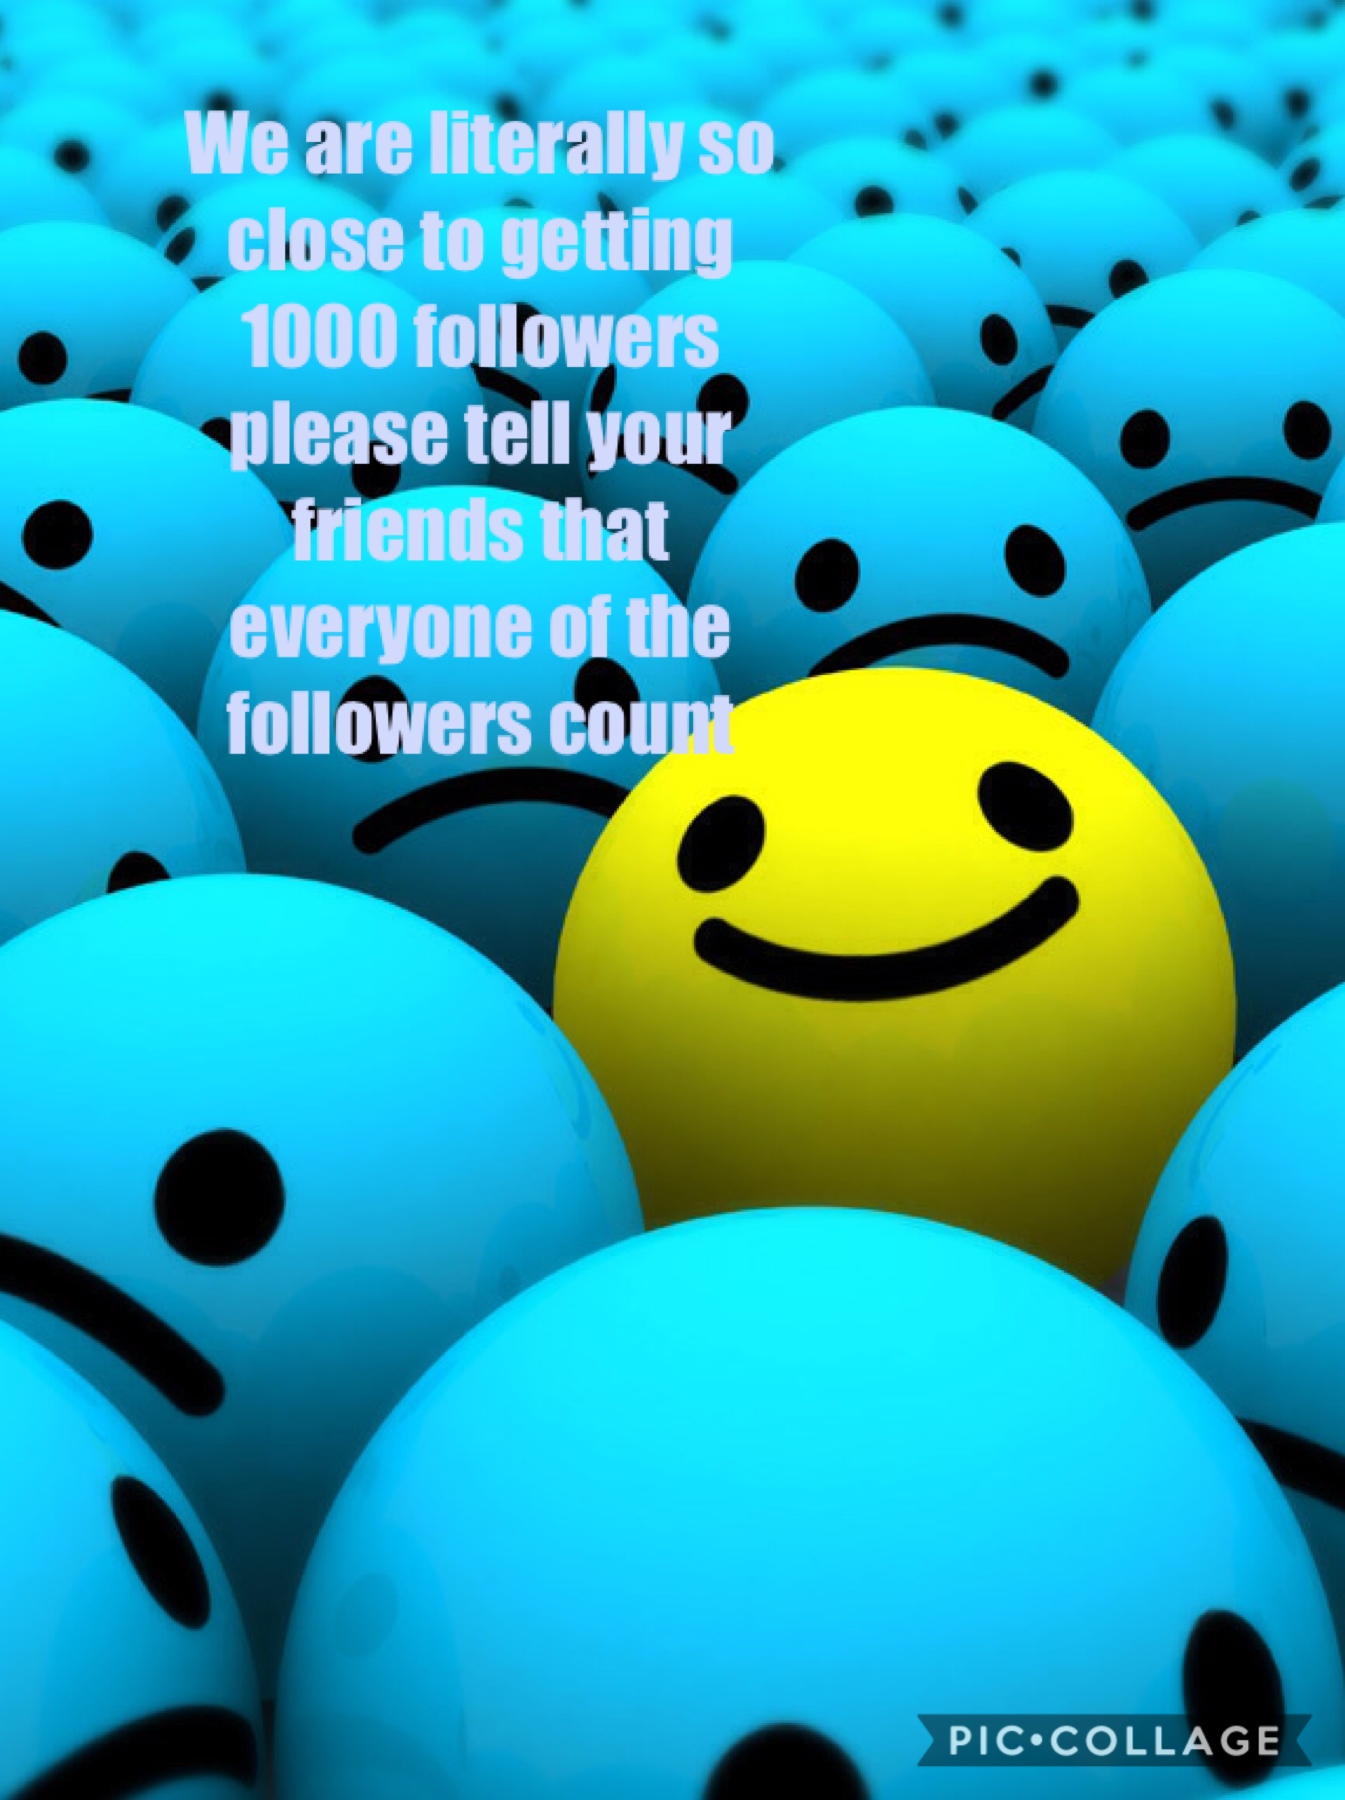 Please help on the road to 1000 followers they all count